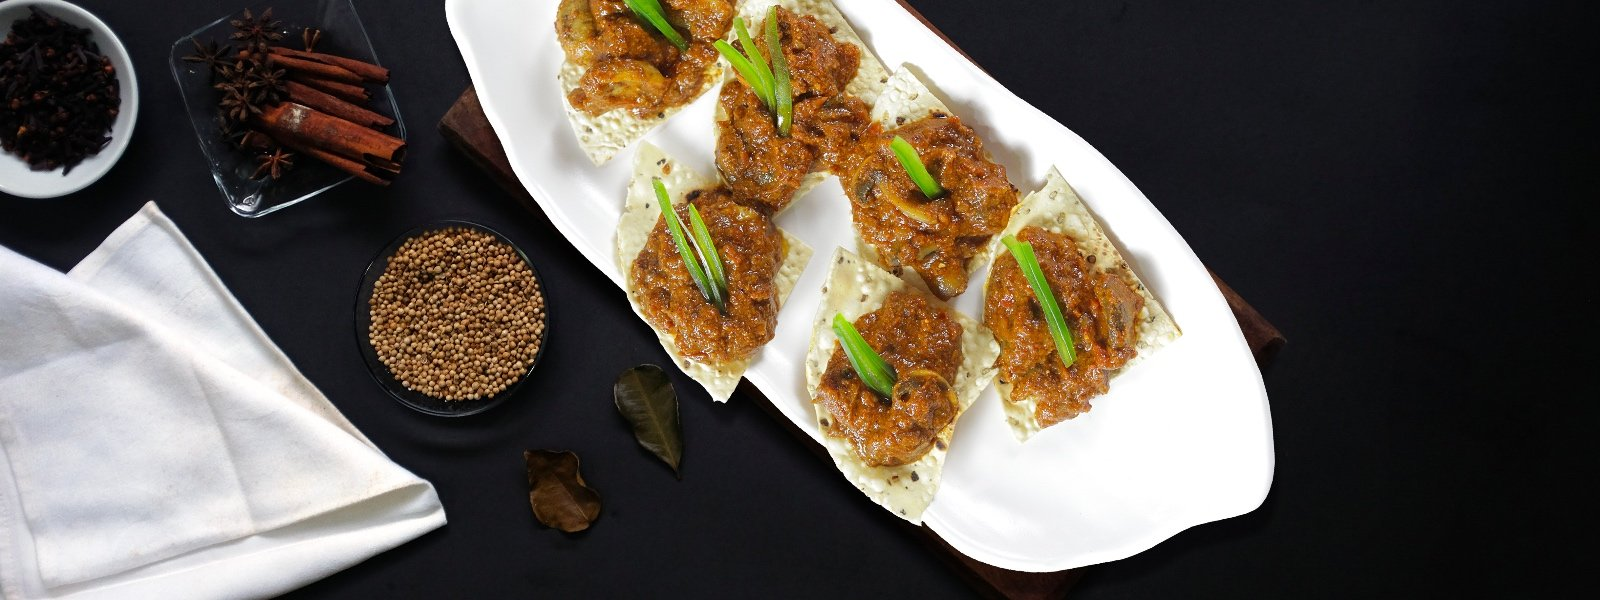 Chettinad Mushroom And Papad Canapés